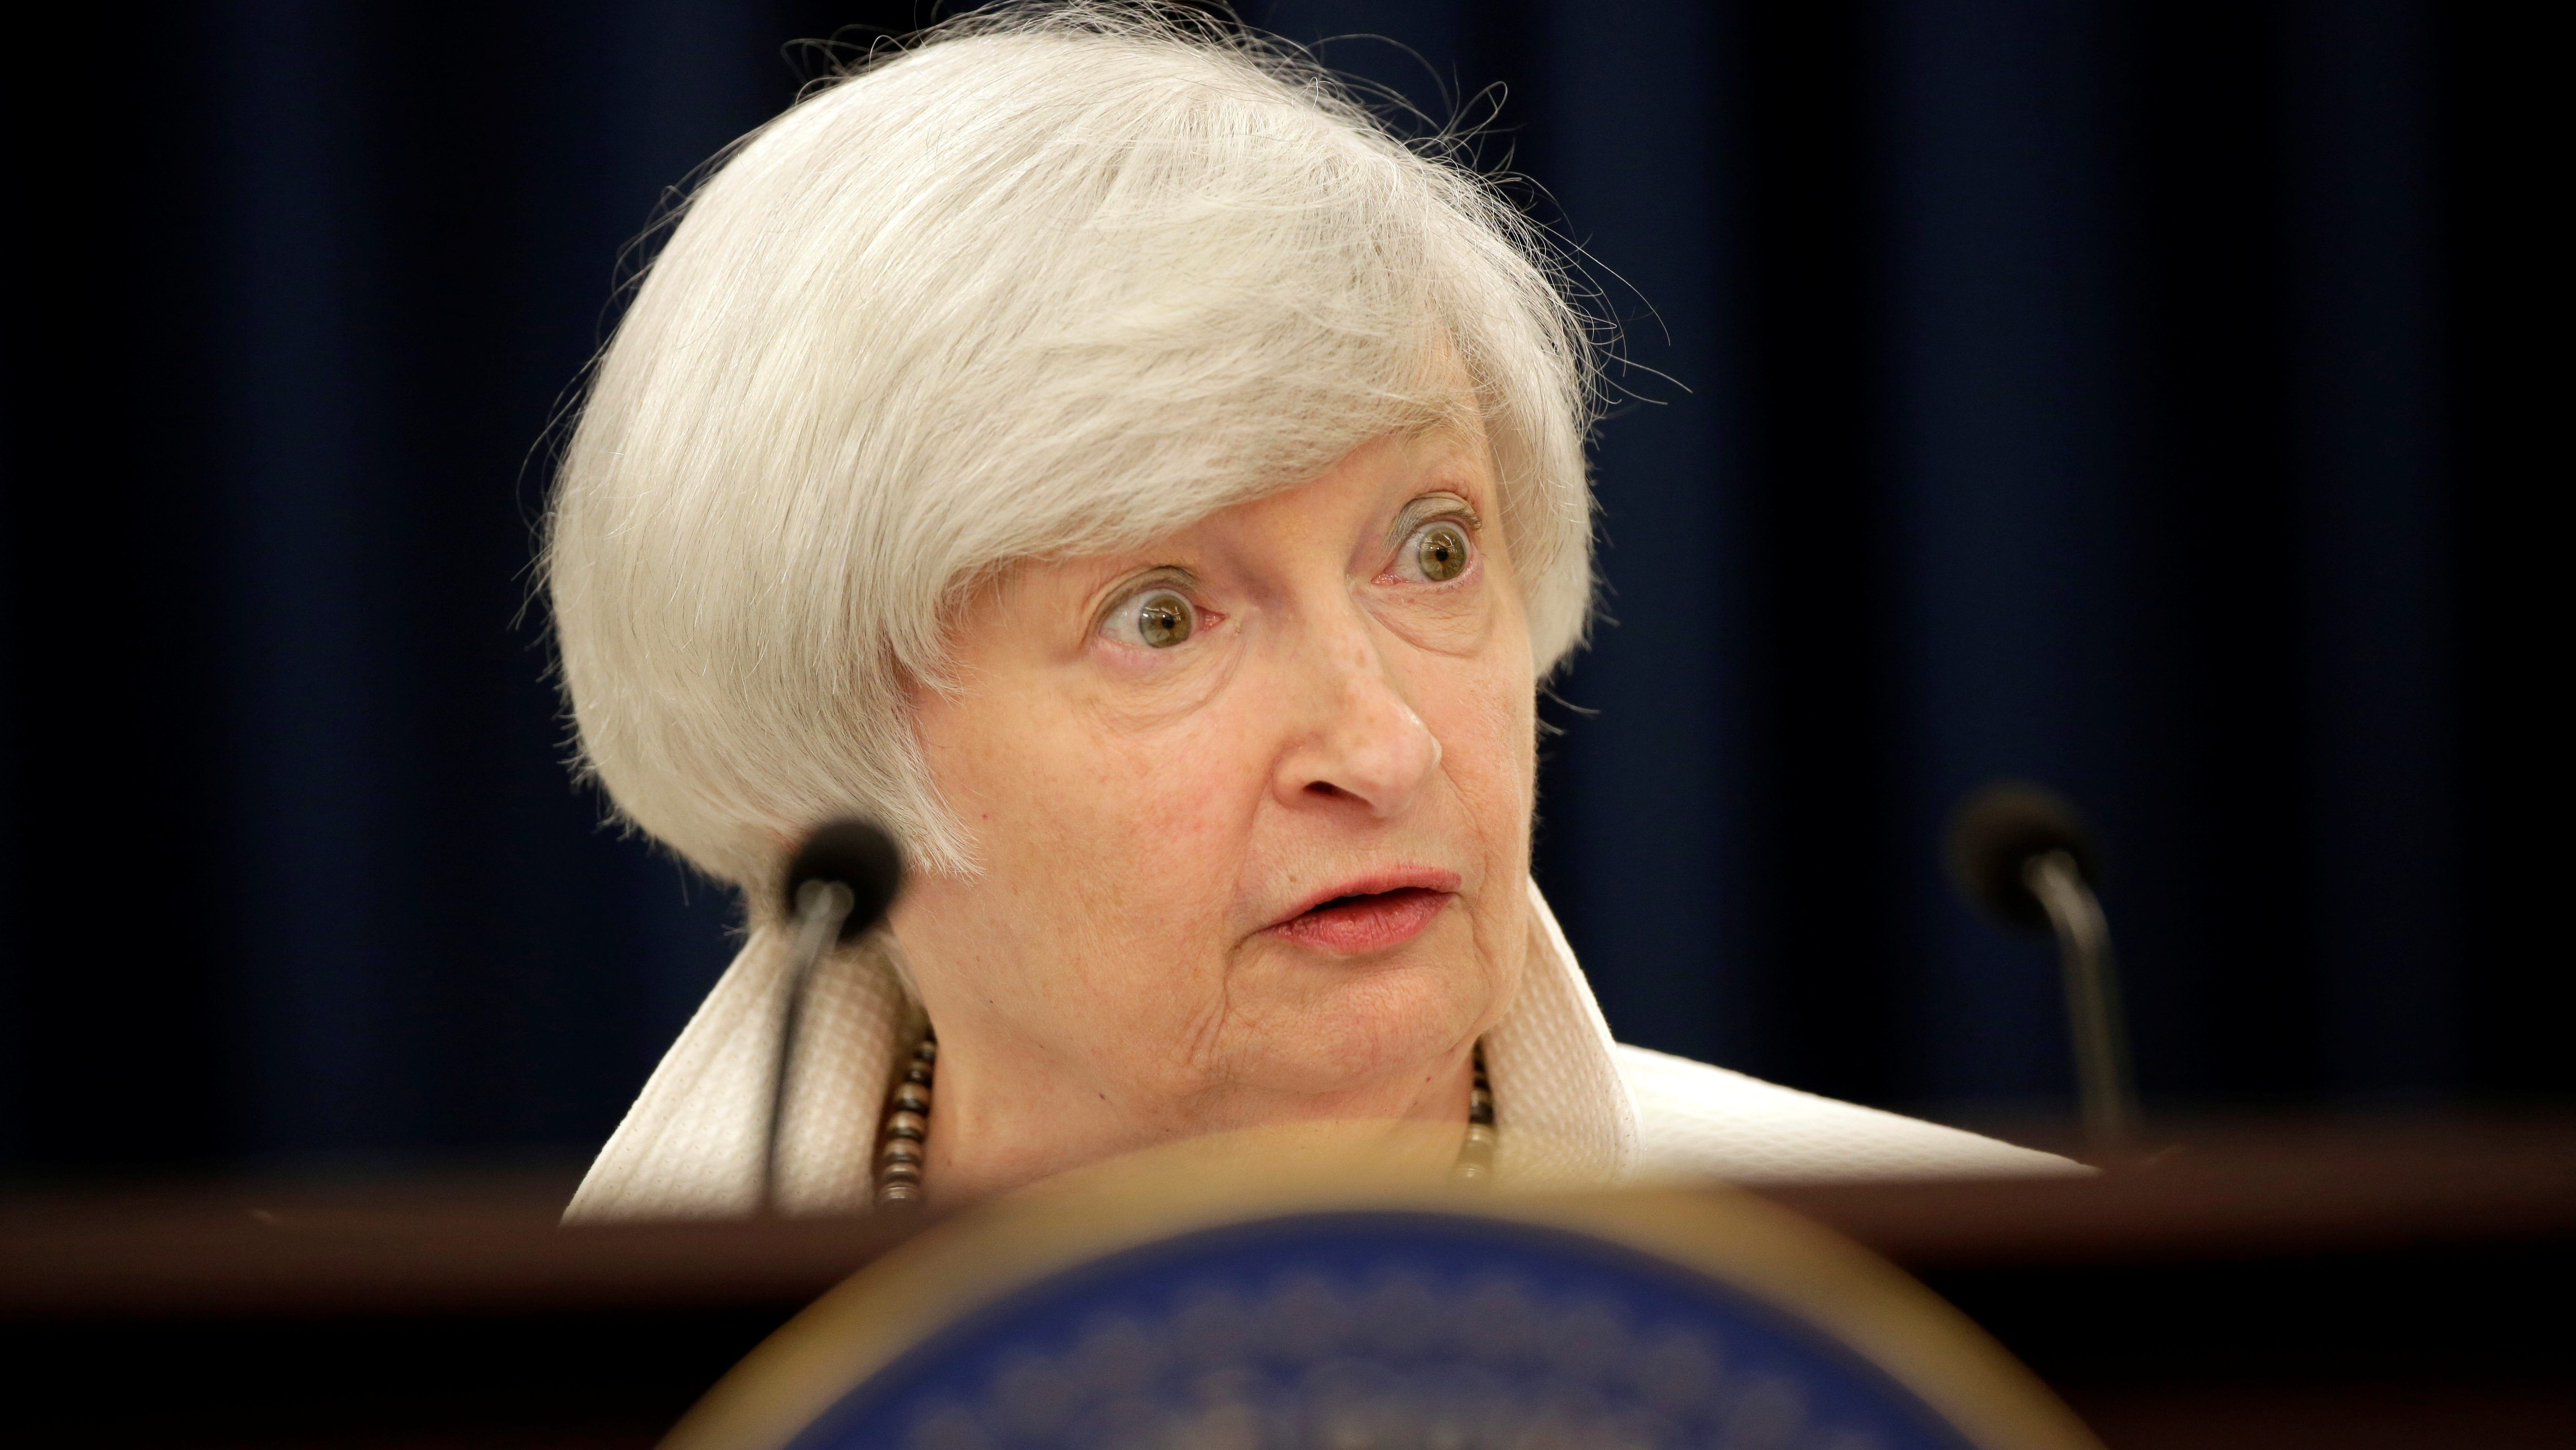 Federal Reserve Chairman Janet Yellen speaks during a news conference after a two-day Federal Open Markets Committee (FOMC) policy meeting, in Washington